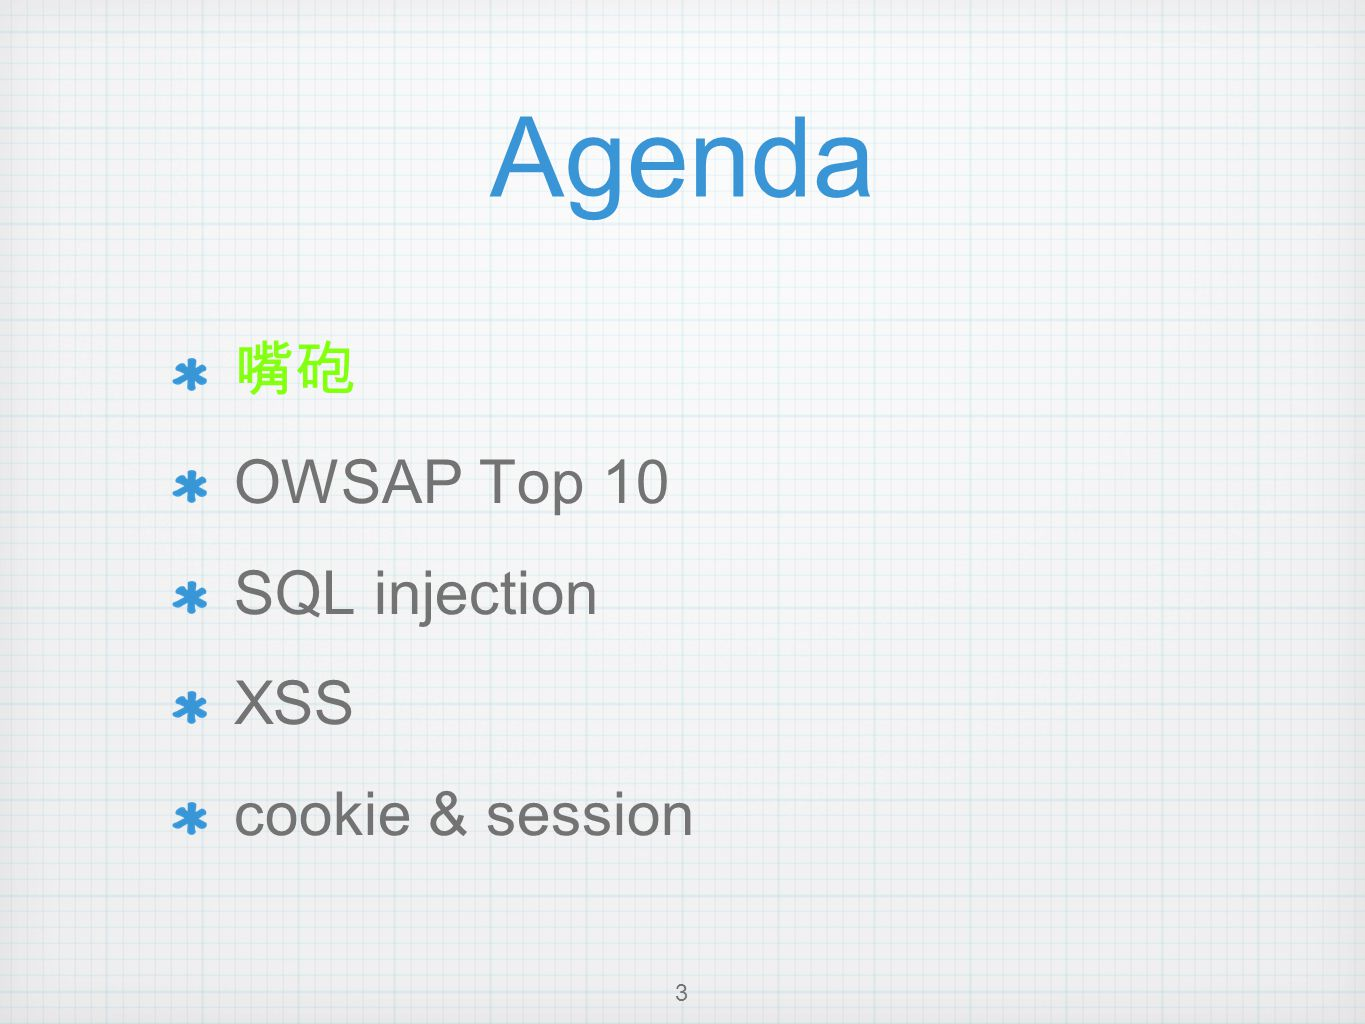 Agenda 嘴砲 OWSAP Top 10 SQL injection XSS cookie & session 3